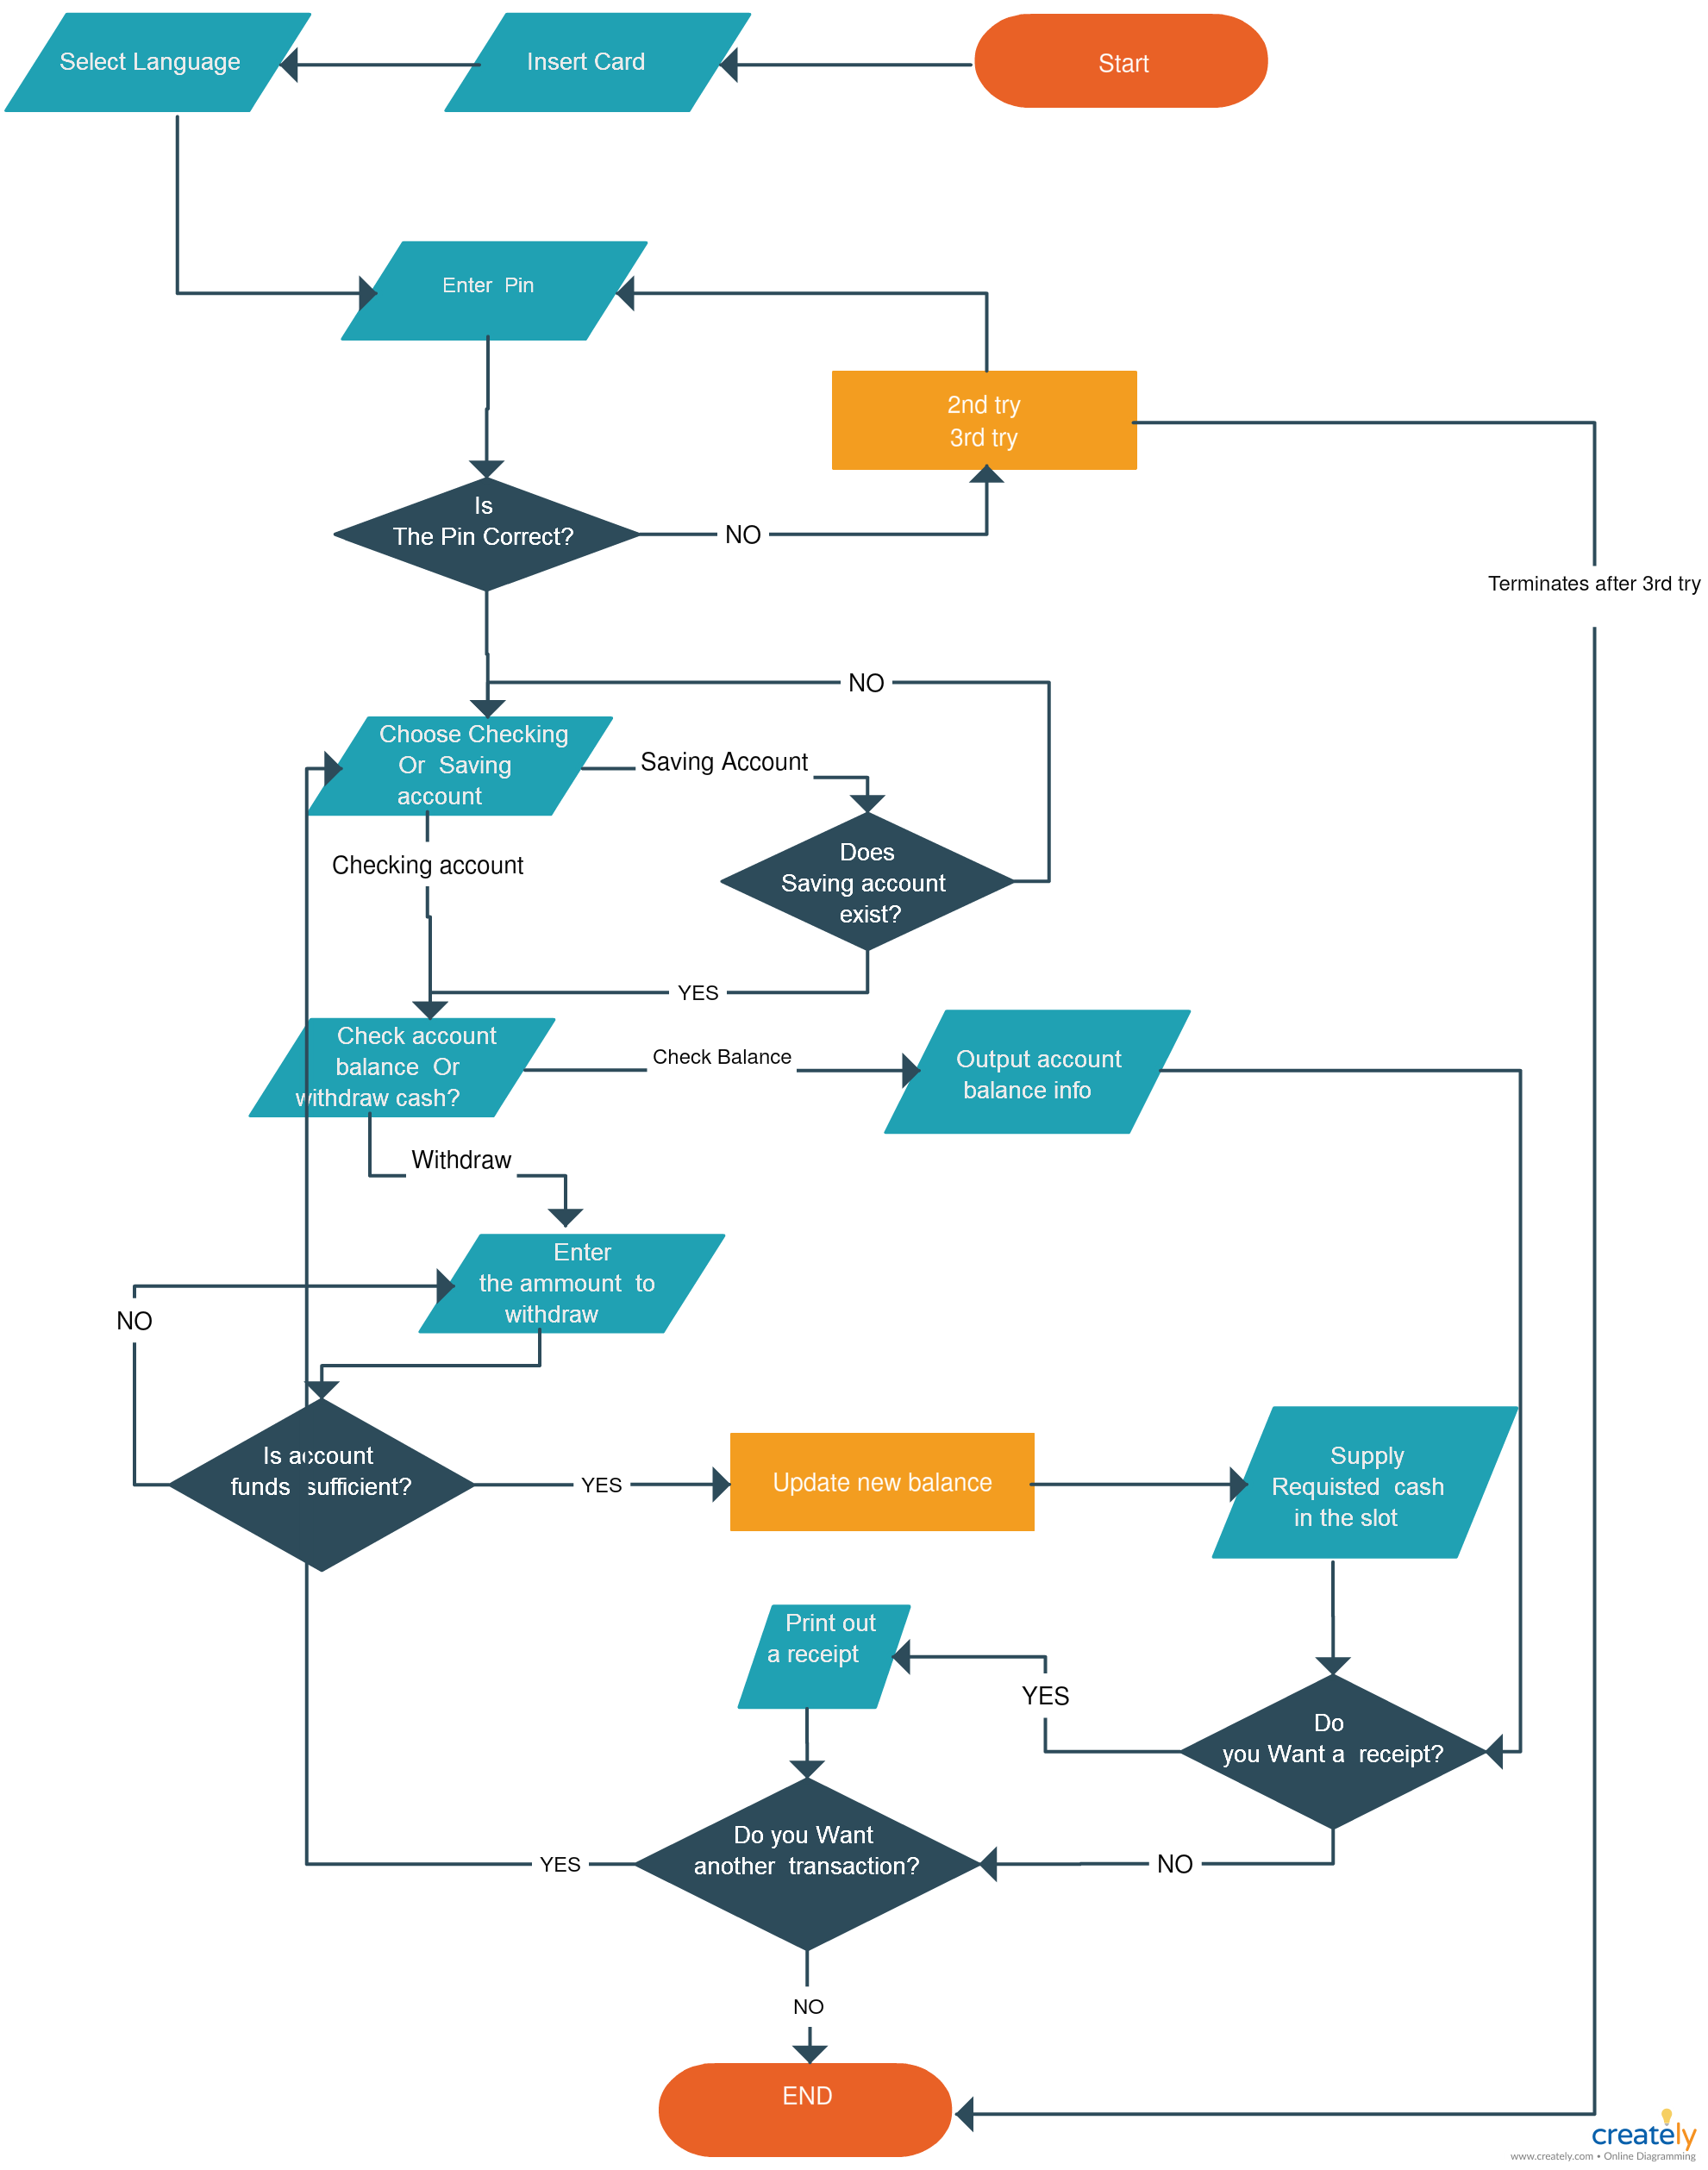 medium resolution of atm flowchart atm flowchart illustrating the process flow of an atm machine atm process flowchart diagram is a great way to layout each segment of the